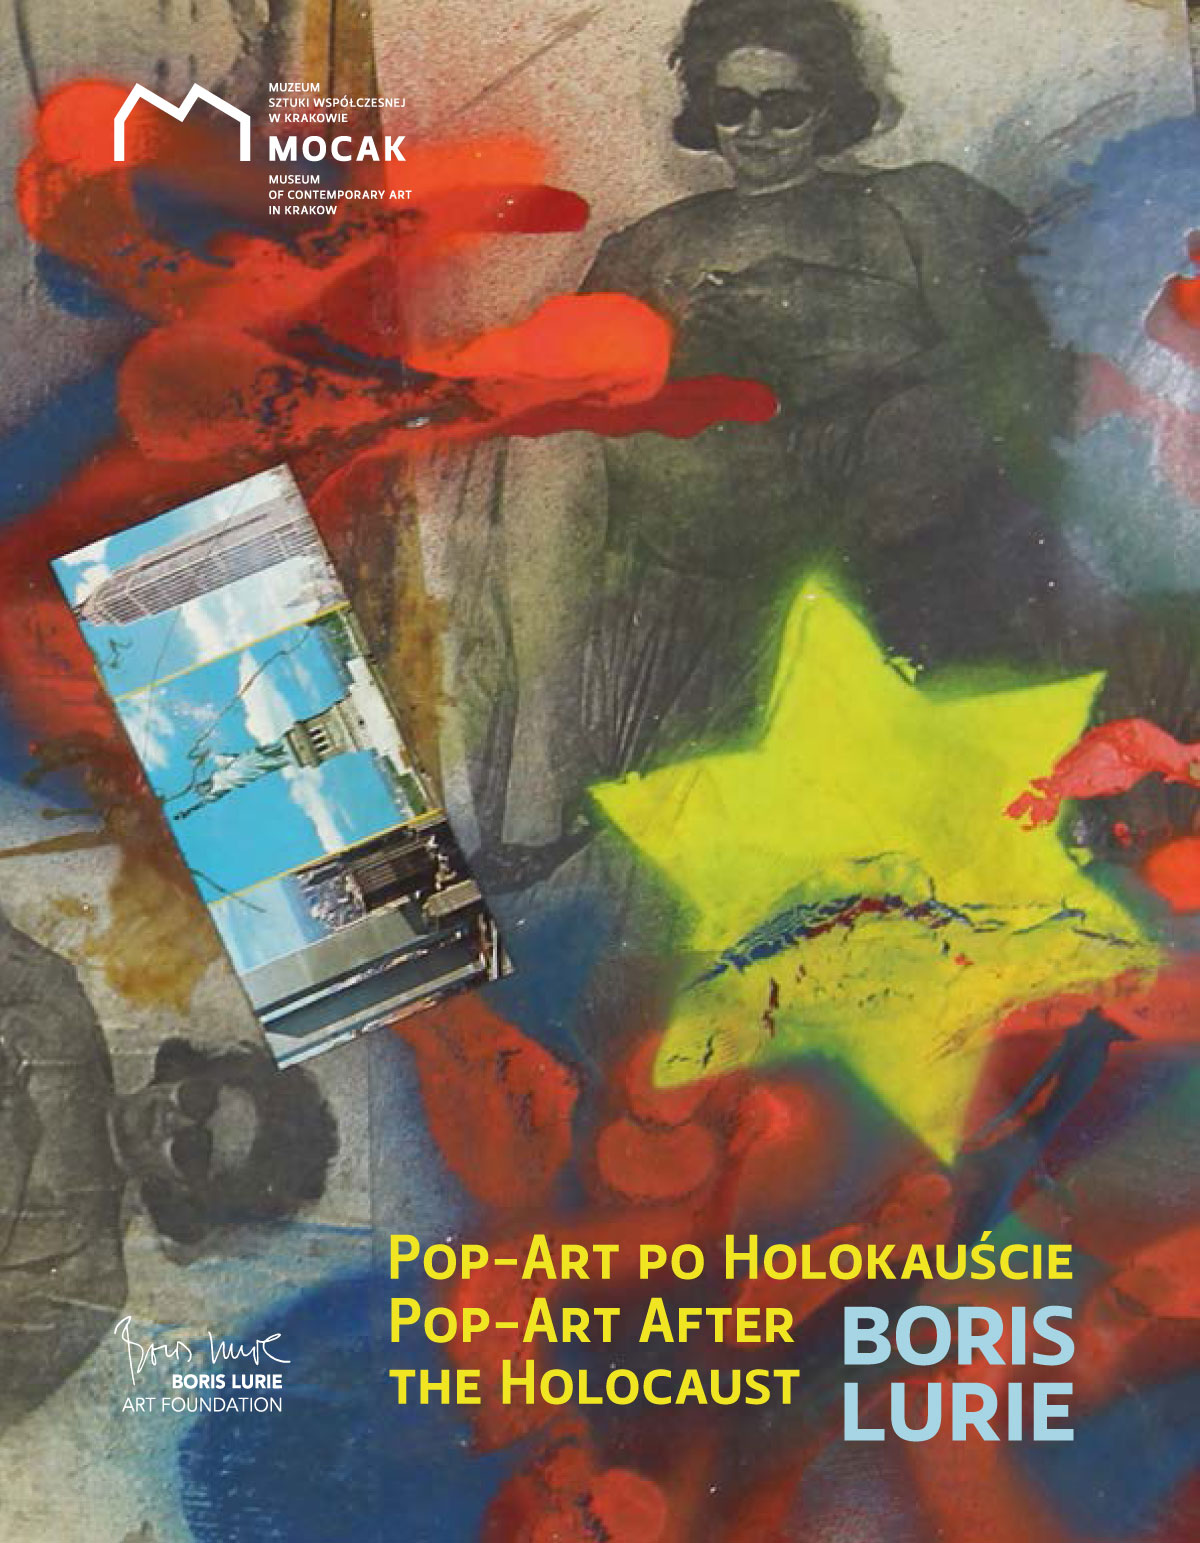 Boris Lurie: Pop-art After the Holocaust